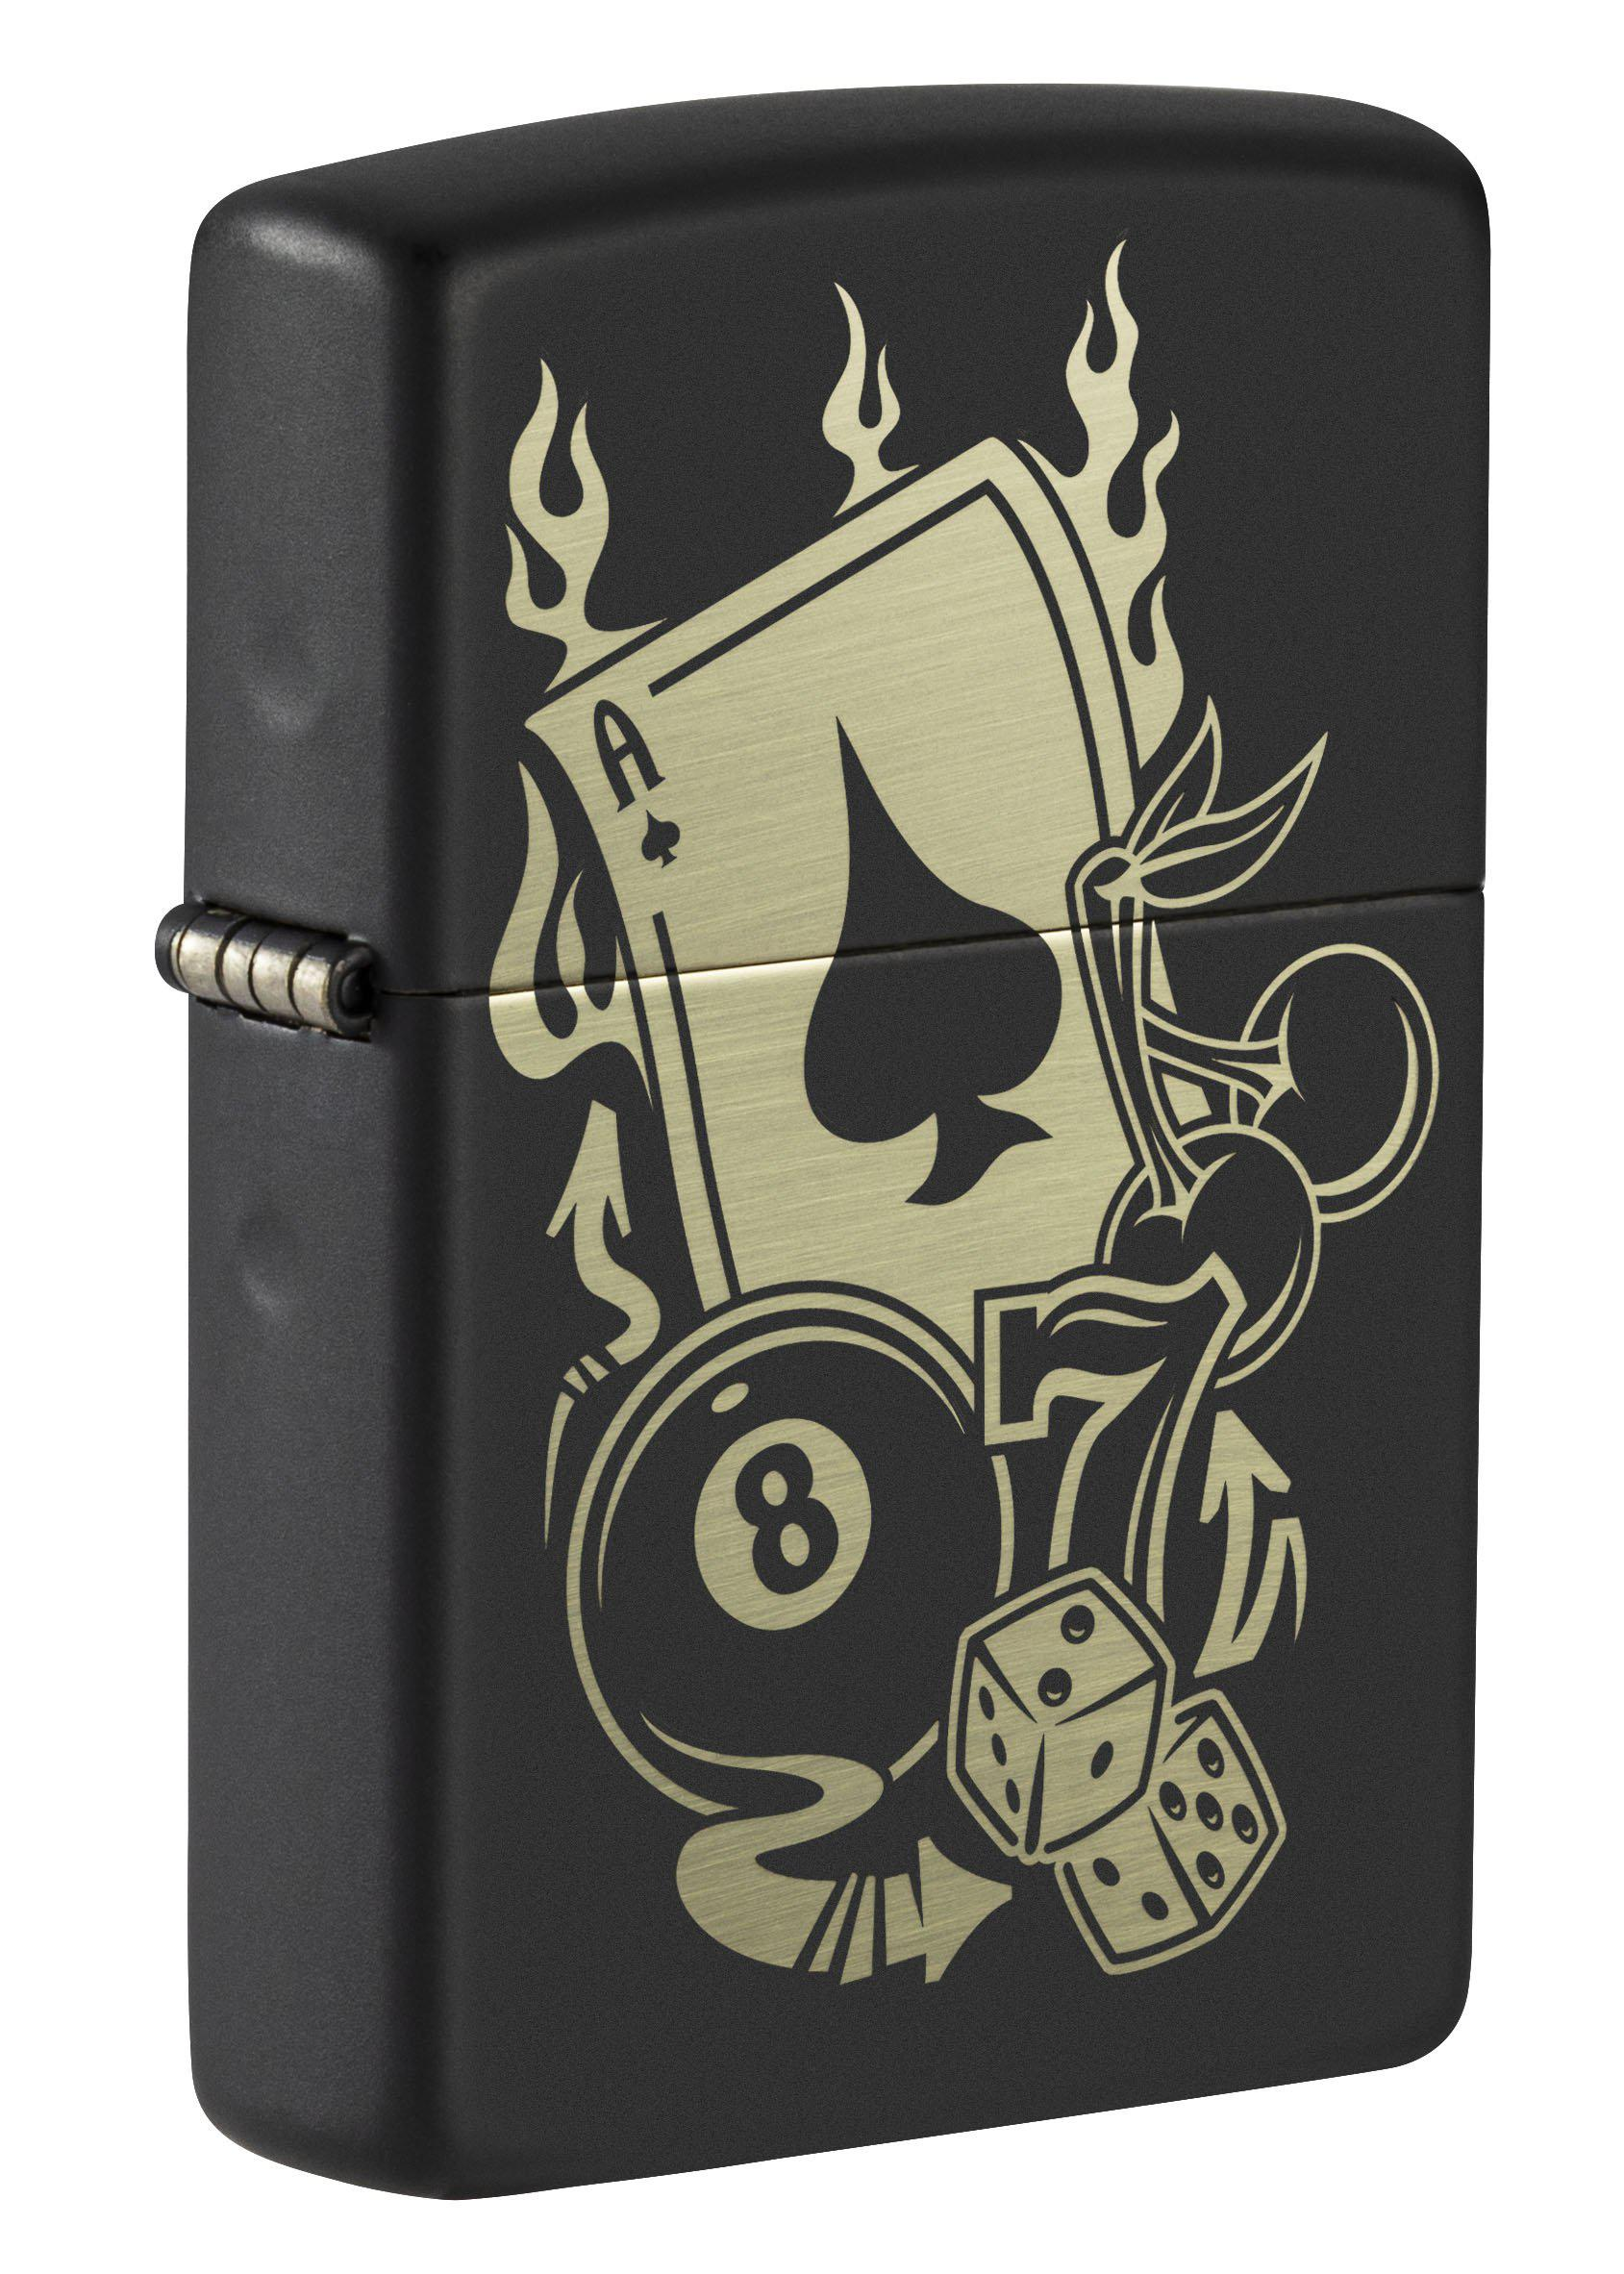 Zippo Lighter: Gambling Icons, Engraved - Black Matte 49257